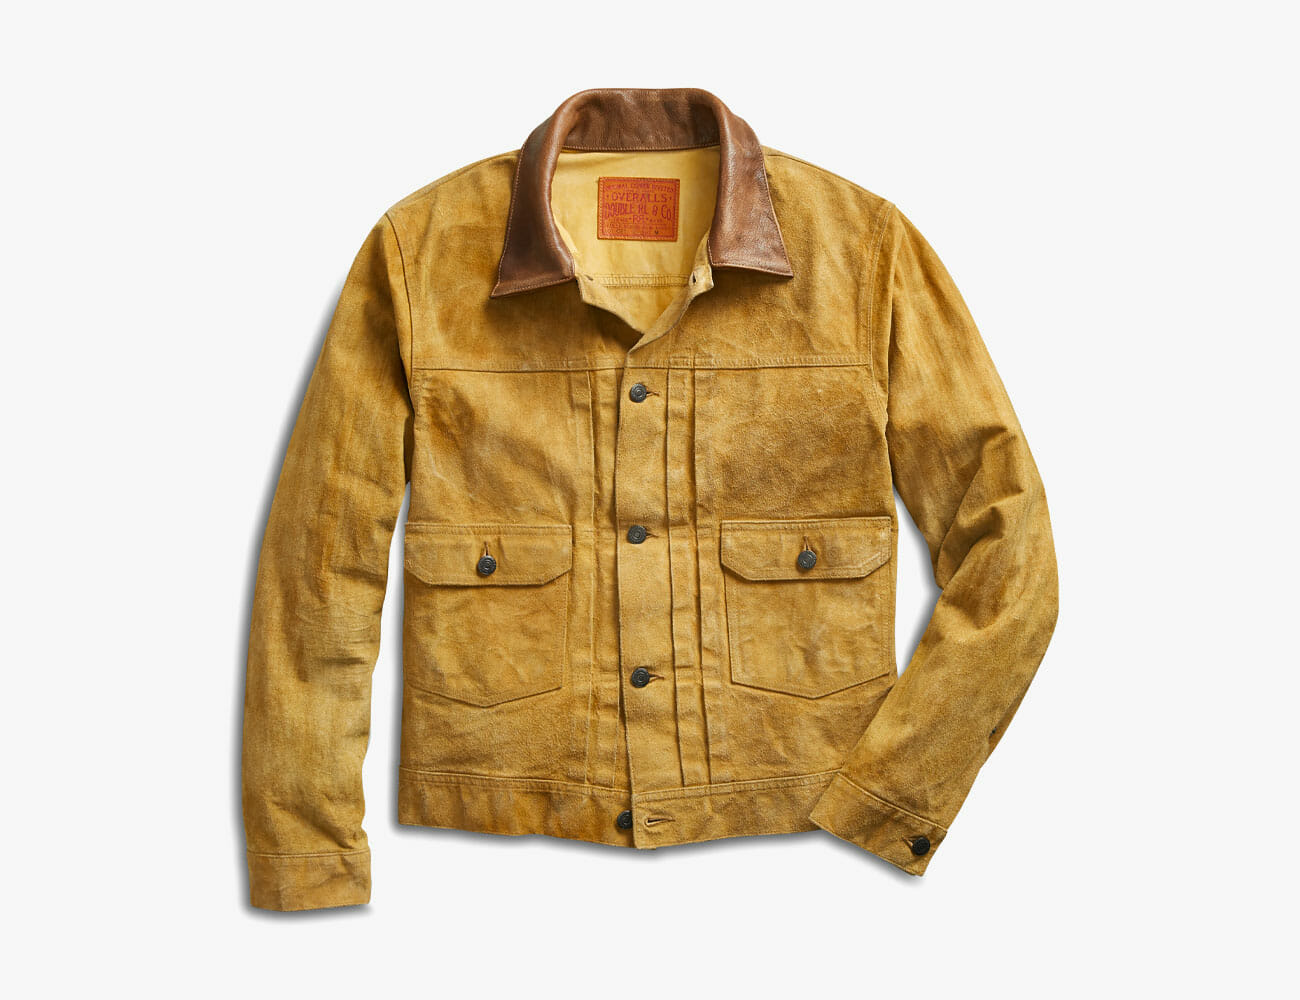 ff2ca33b110dc This hard-wearing take on a Levi's Type II style is made from lightweight  Italian suede. It includes a full-grain calfskin collar, a buttoned  placket, ...